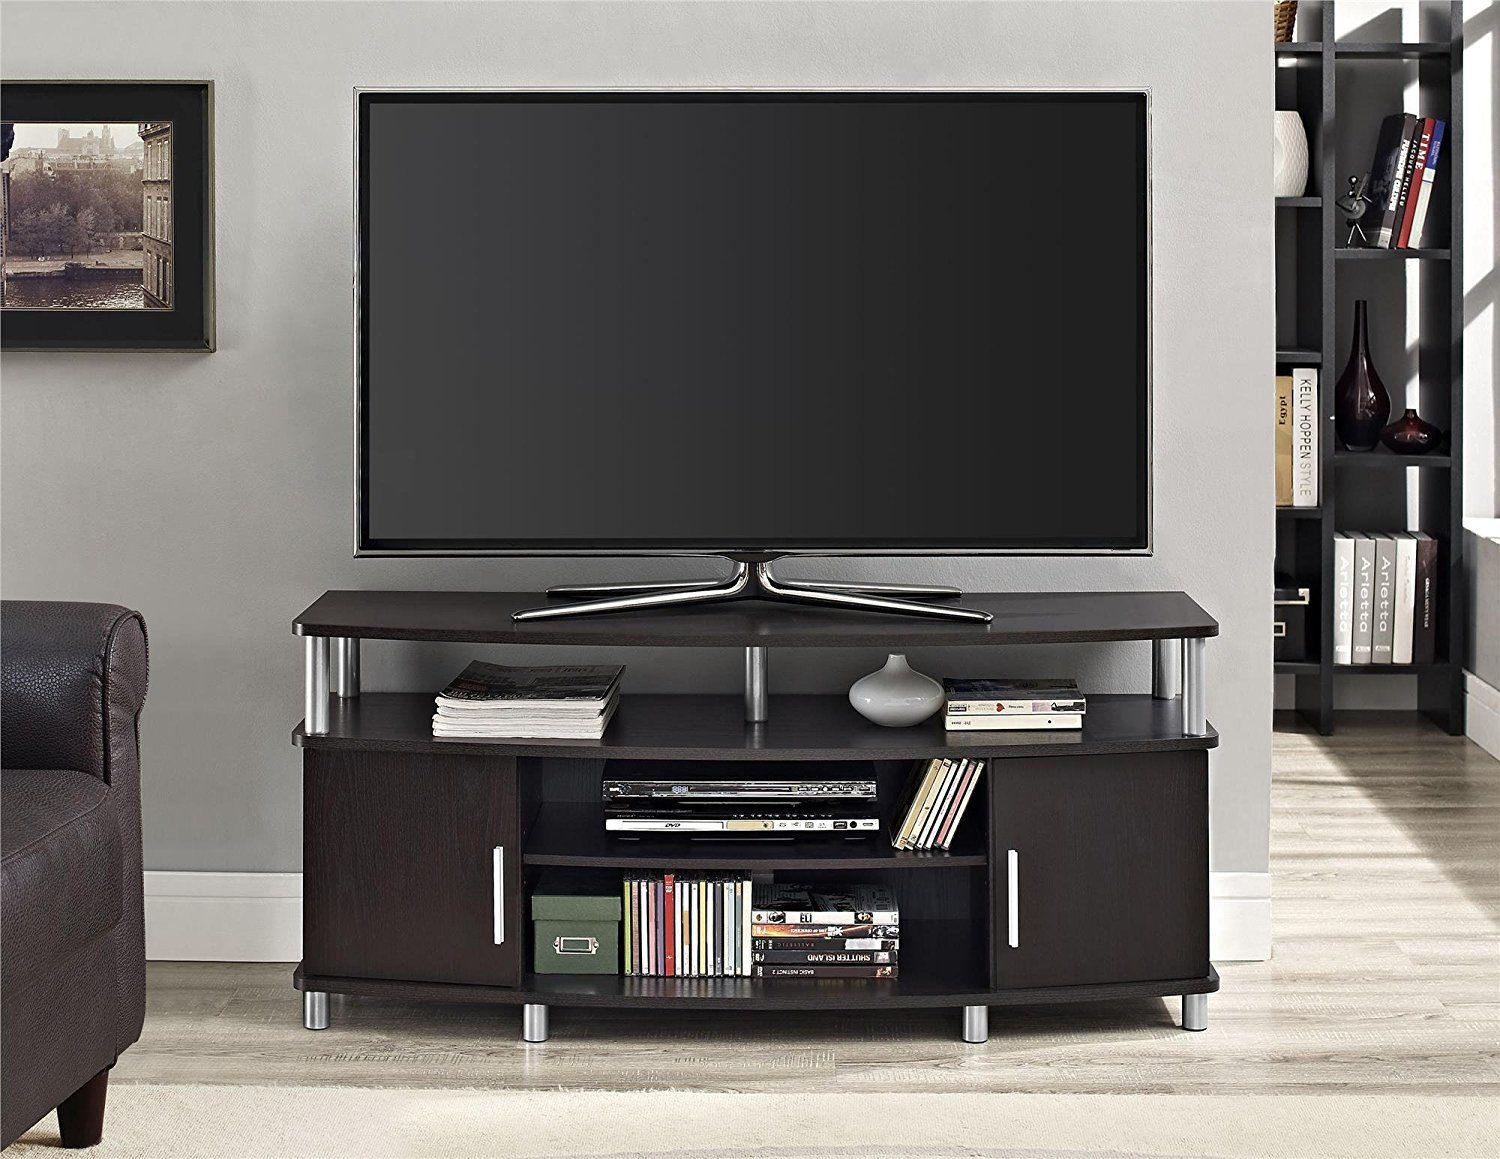 TV on TV stand